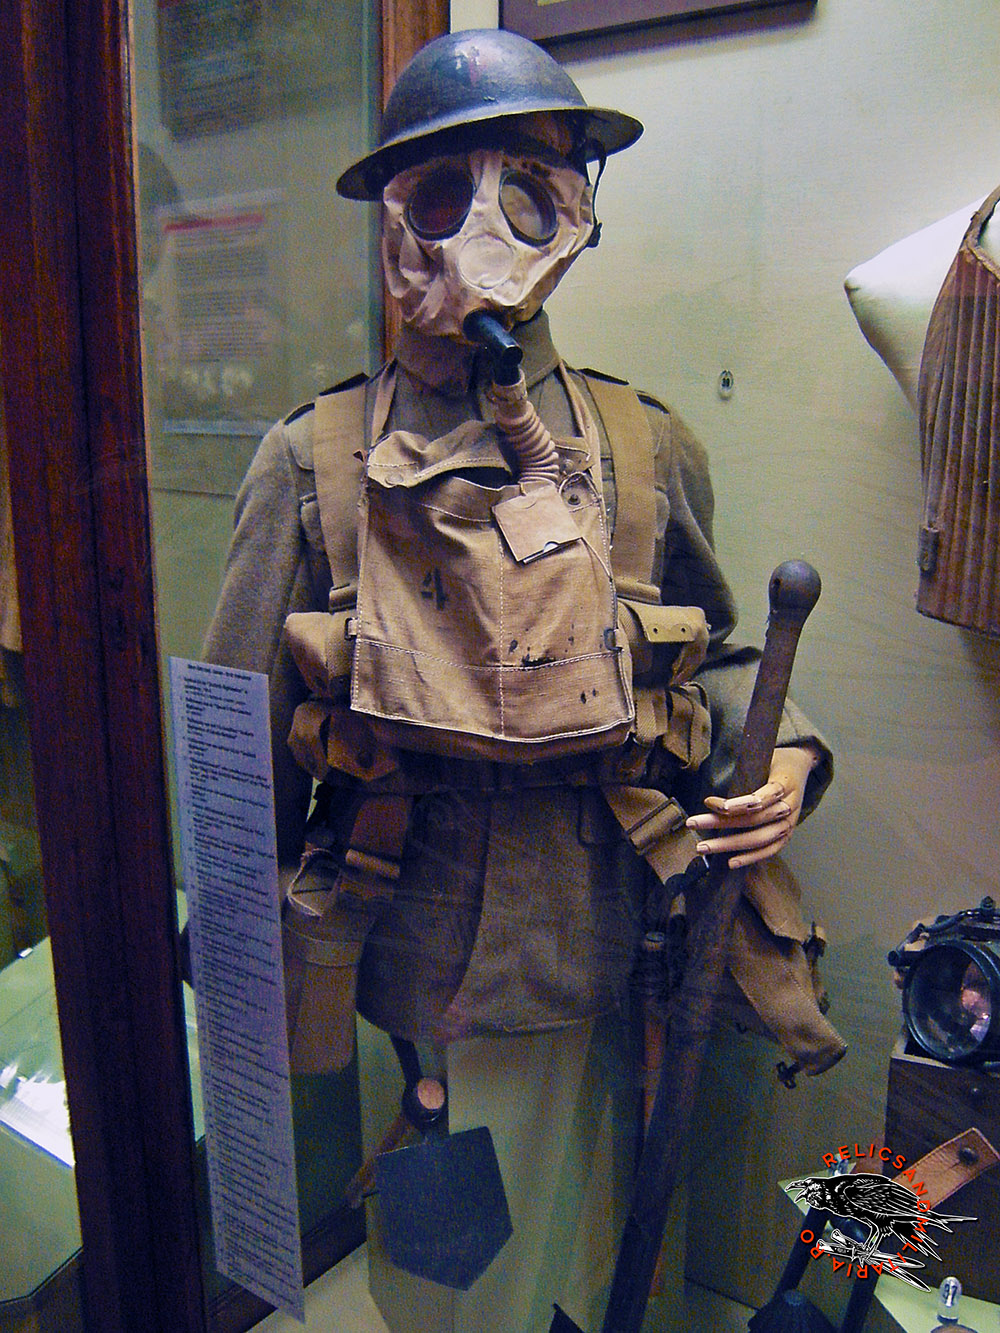 ww1 soldier uniform with gas mask